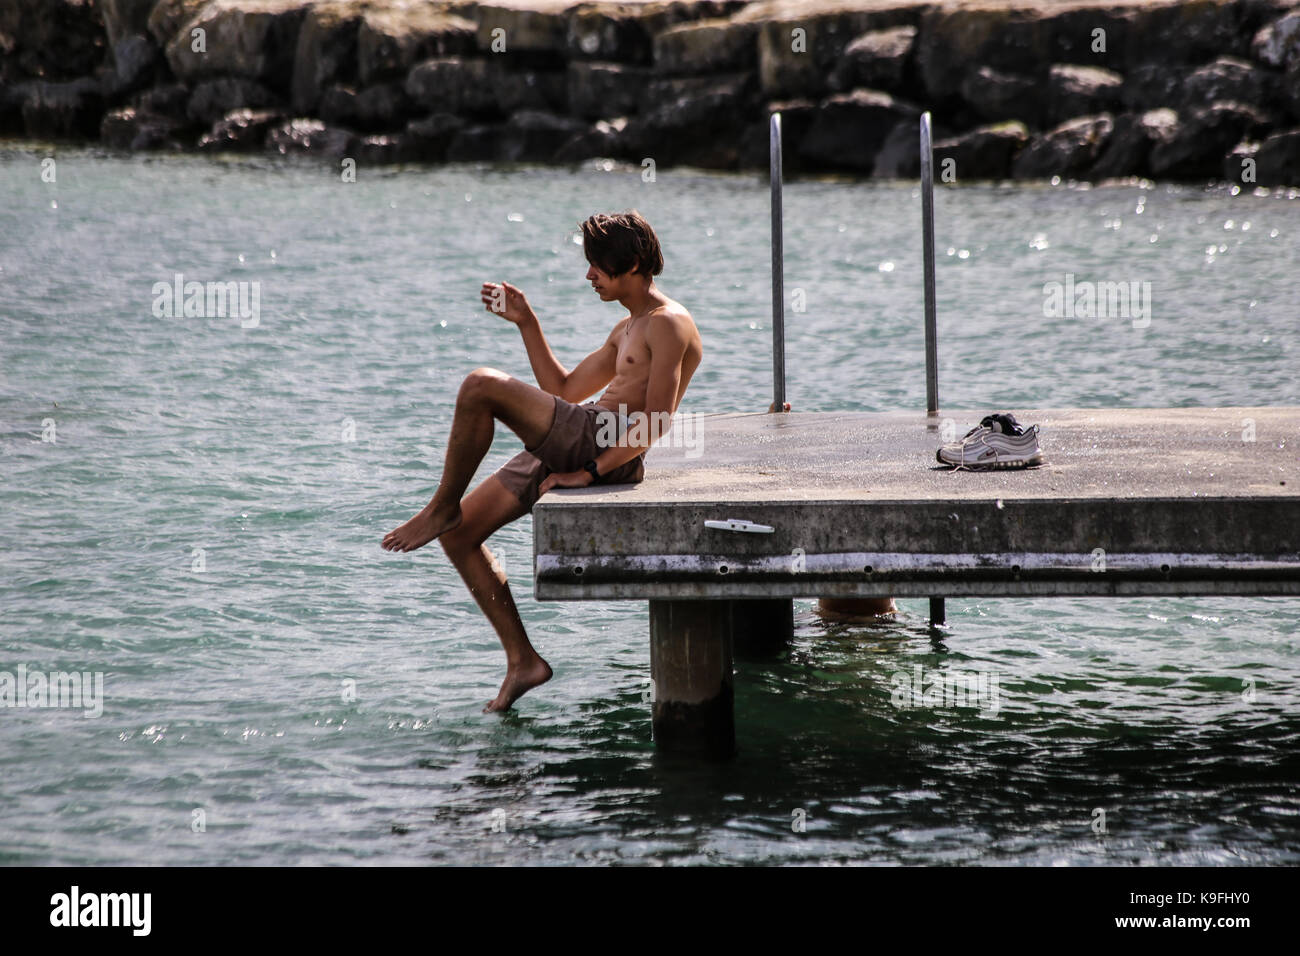 Testing the waters - Stock Image